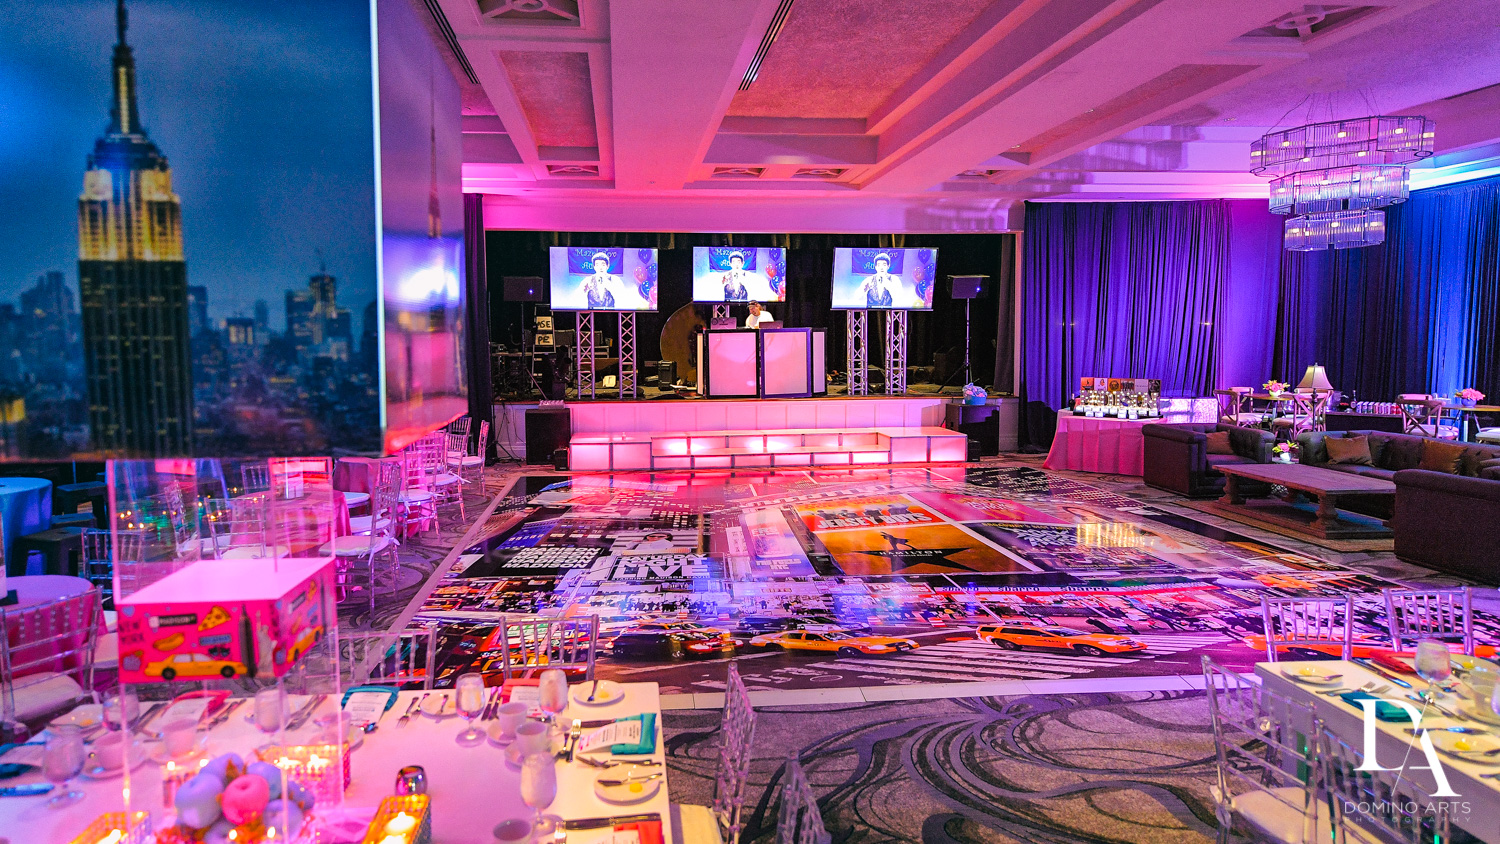 luxury decor at New York Theme Bat Mitzvah at Woodfield Country Club, Boca Raton by Domino Arts Photography